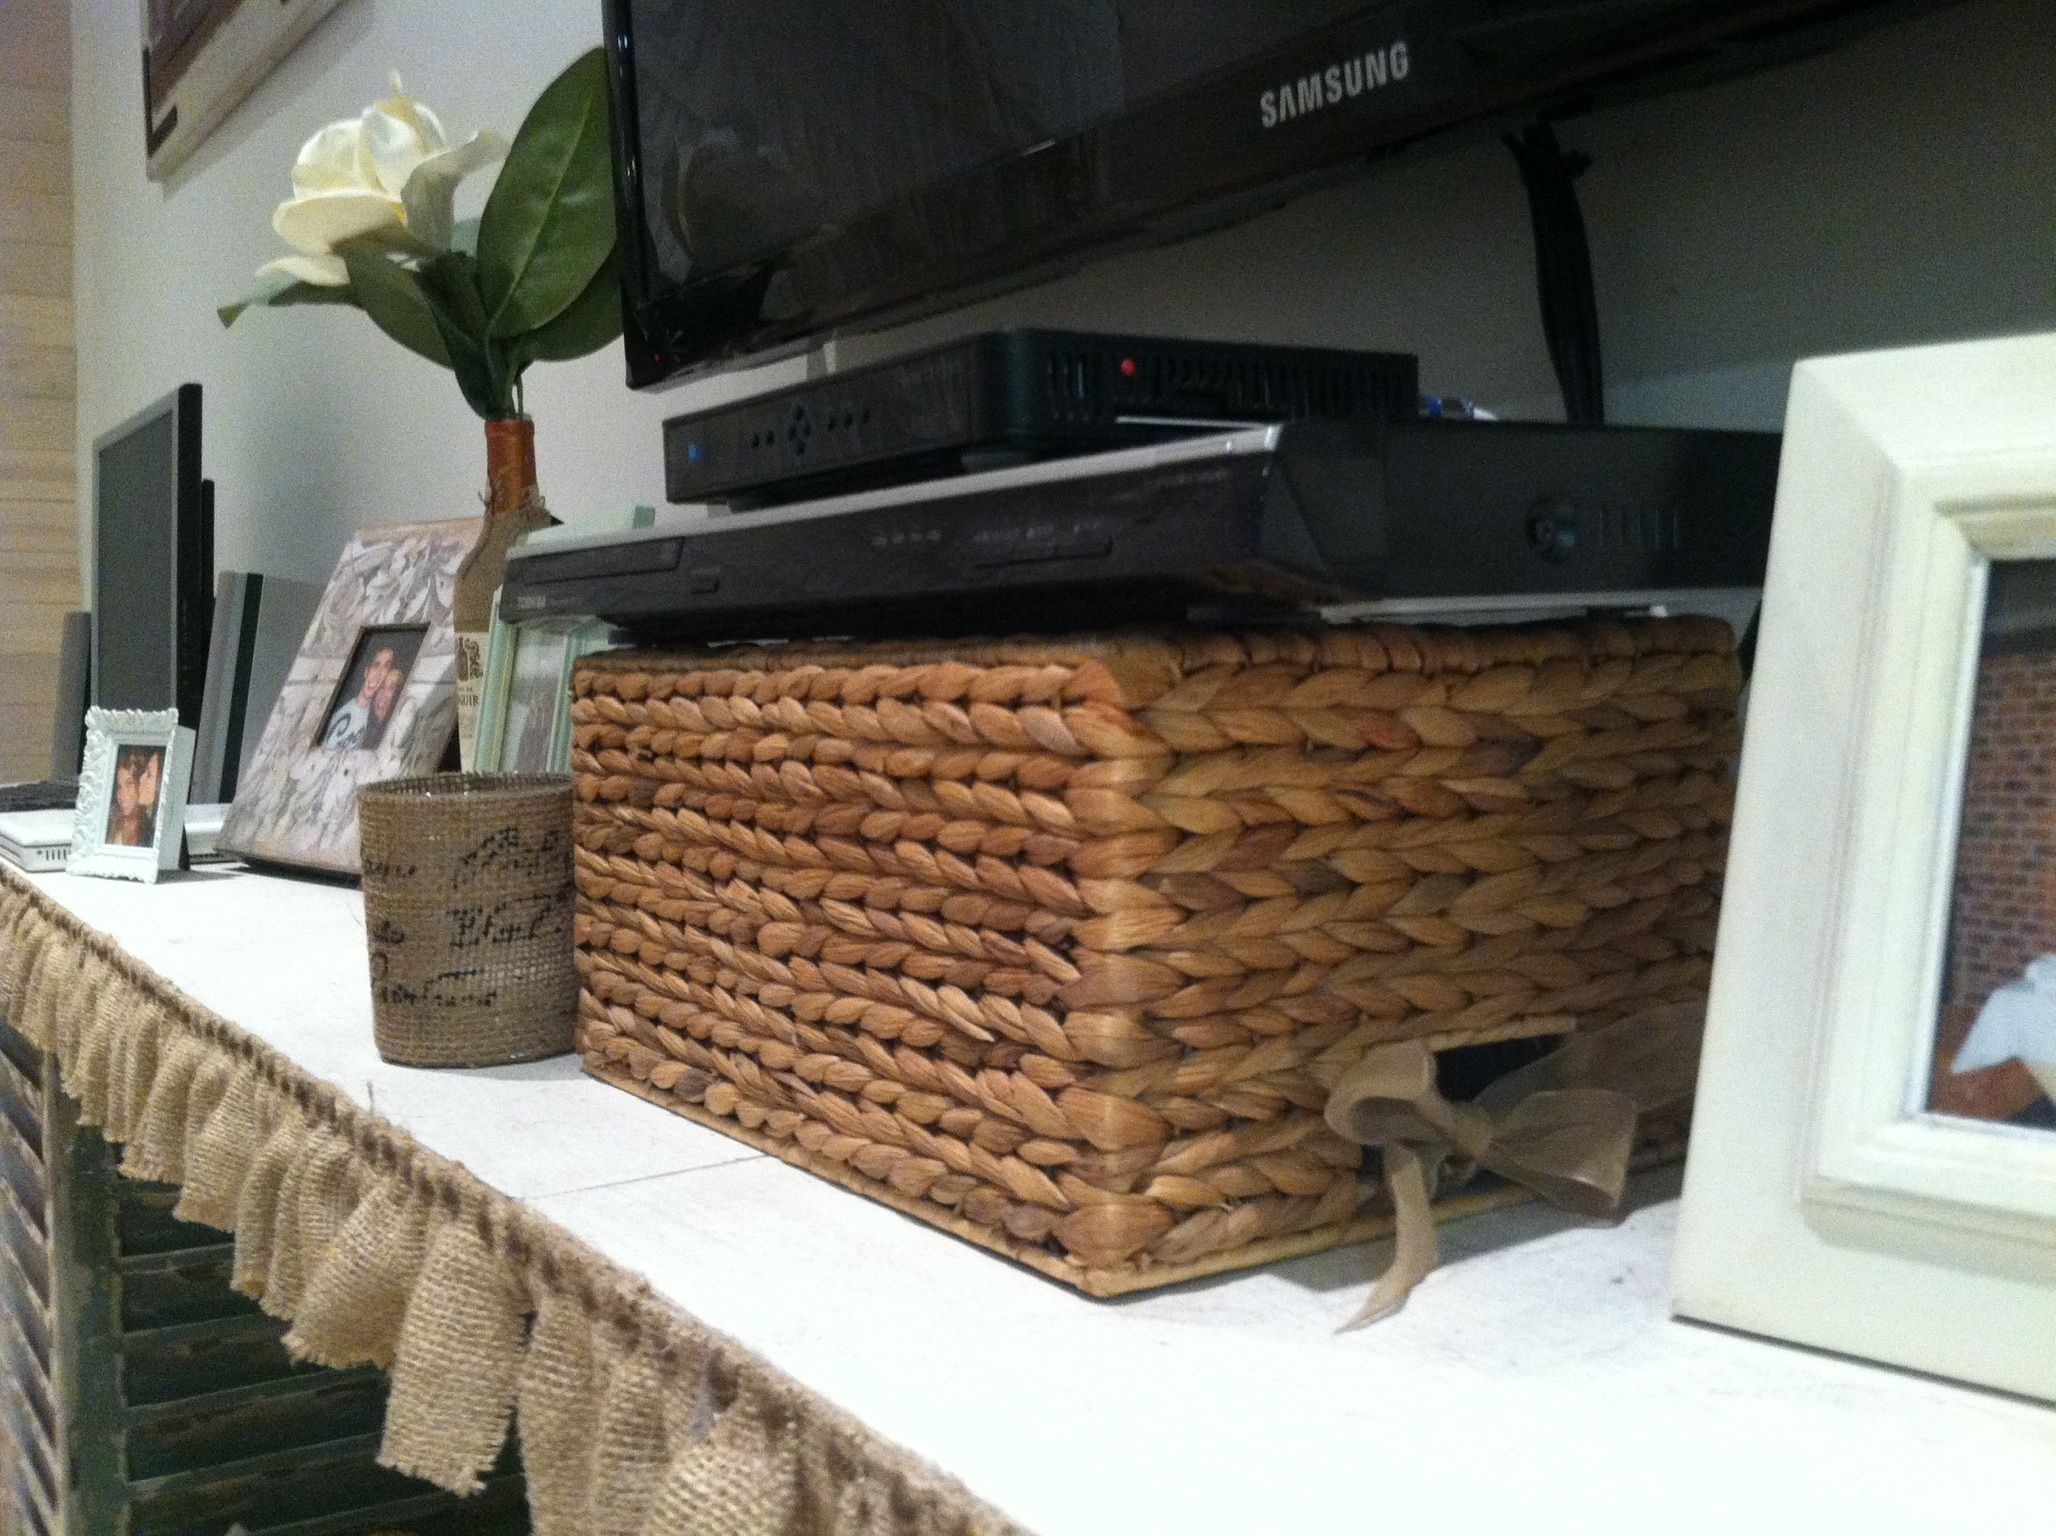 Wicker Basket With The Back Cut Out To Hide Wires Home Pinterest Surround Sound For Free It Could Save Your Marriage Wiring